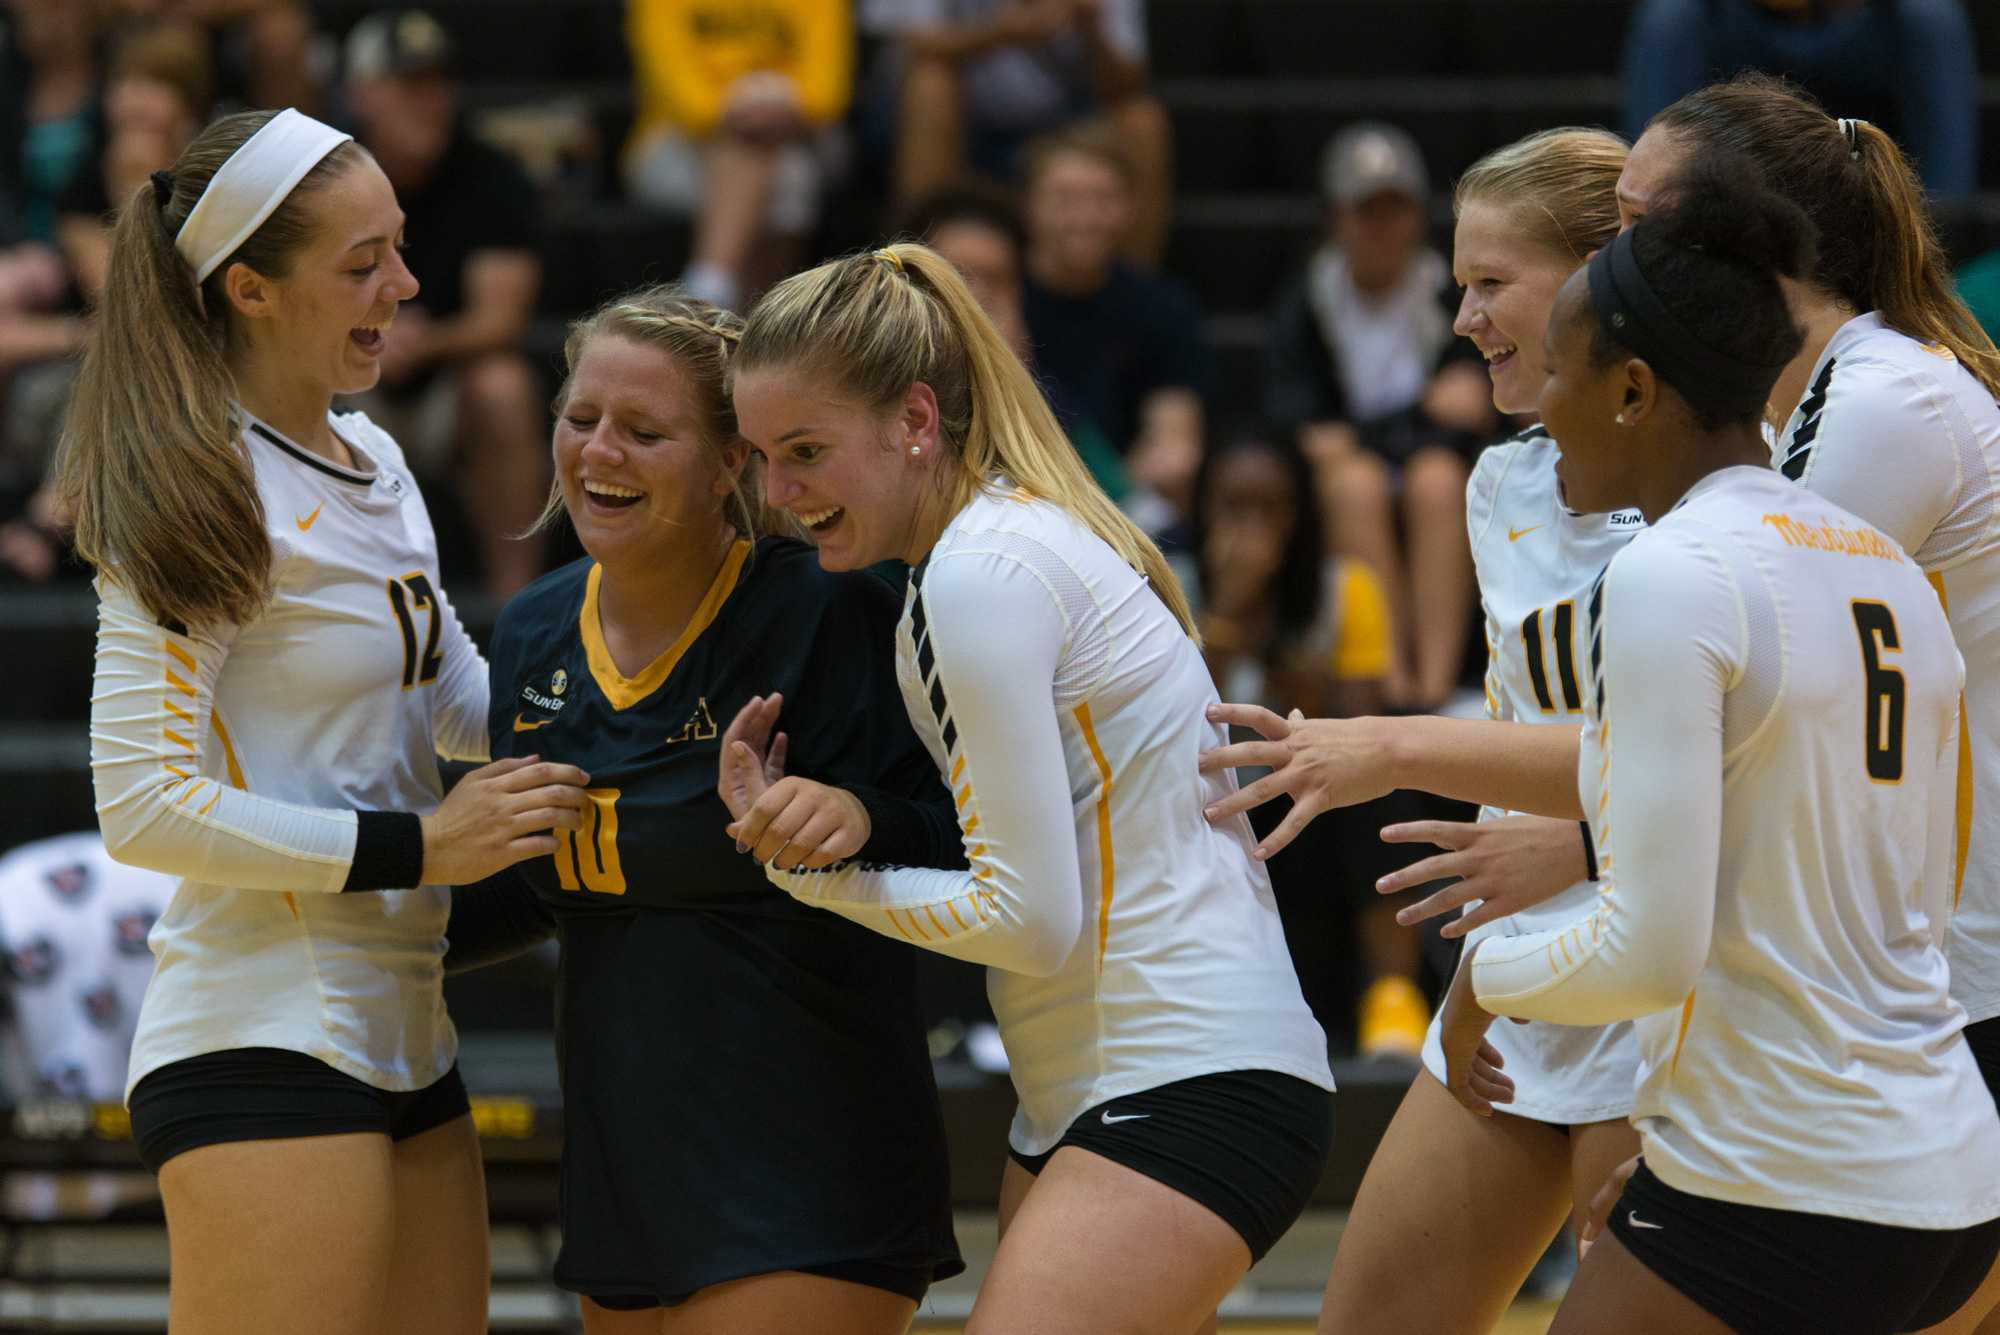 Libero/Defensive Specialist Olivia Loeffler stands up with the help of her teammates after falling and being stepped on during a play. The gold team won 4-0. Photo by Dallas Linger, Photo Editor